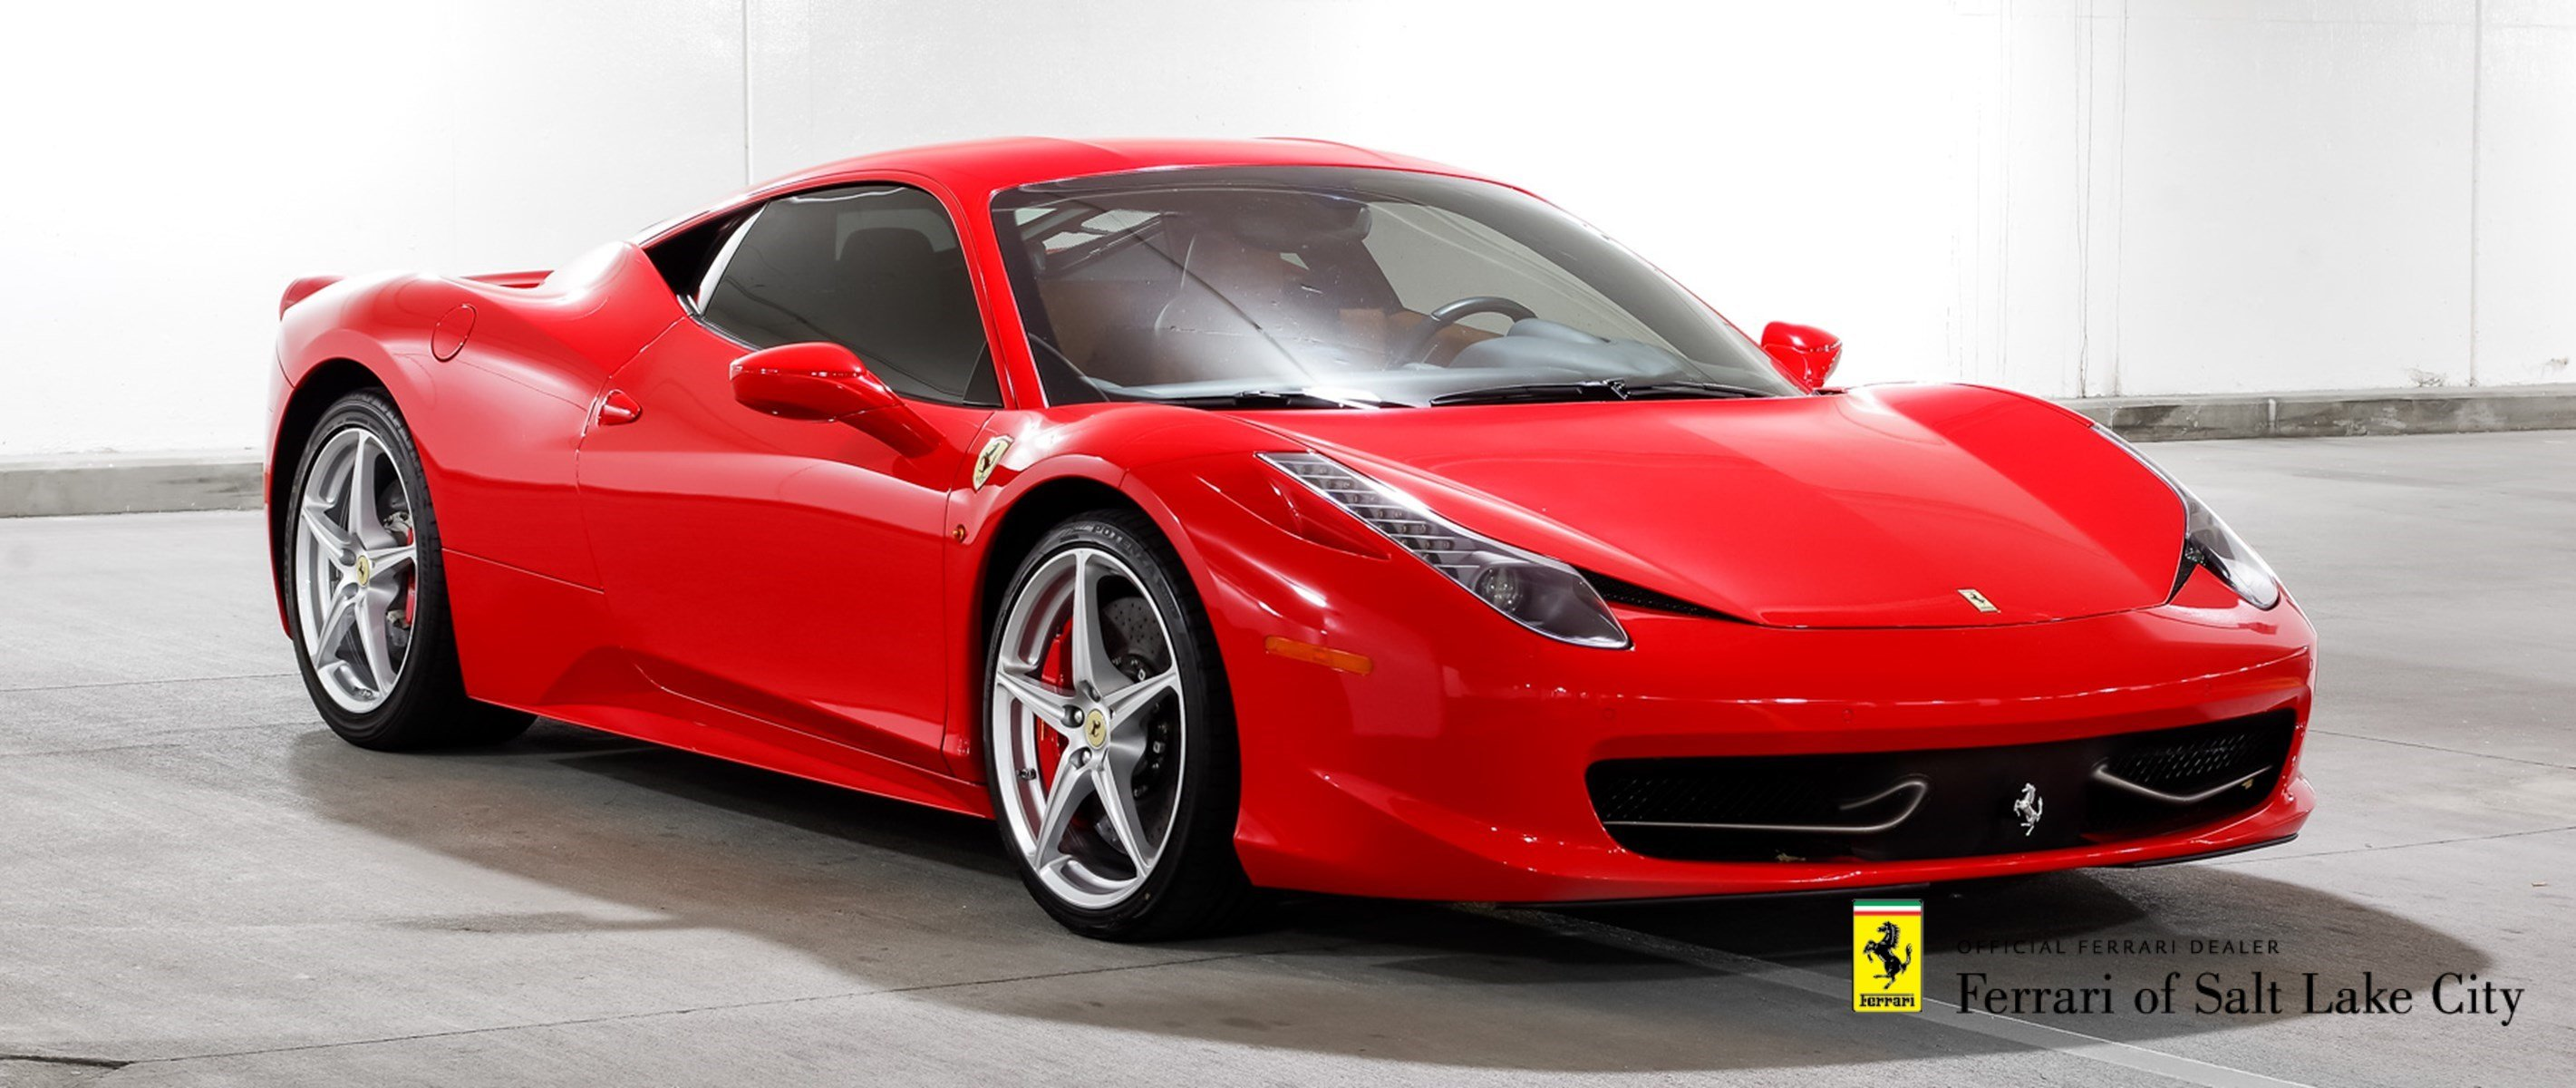 ferrari roswell for sale htm c stock new used ga near italia toyota lease